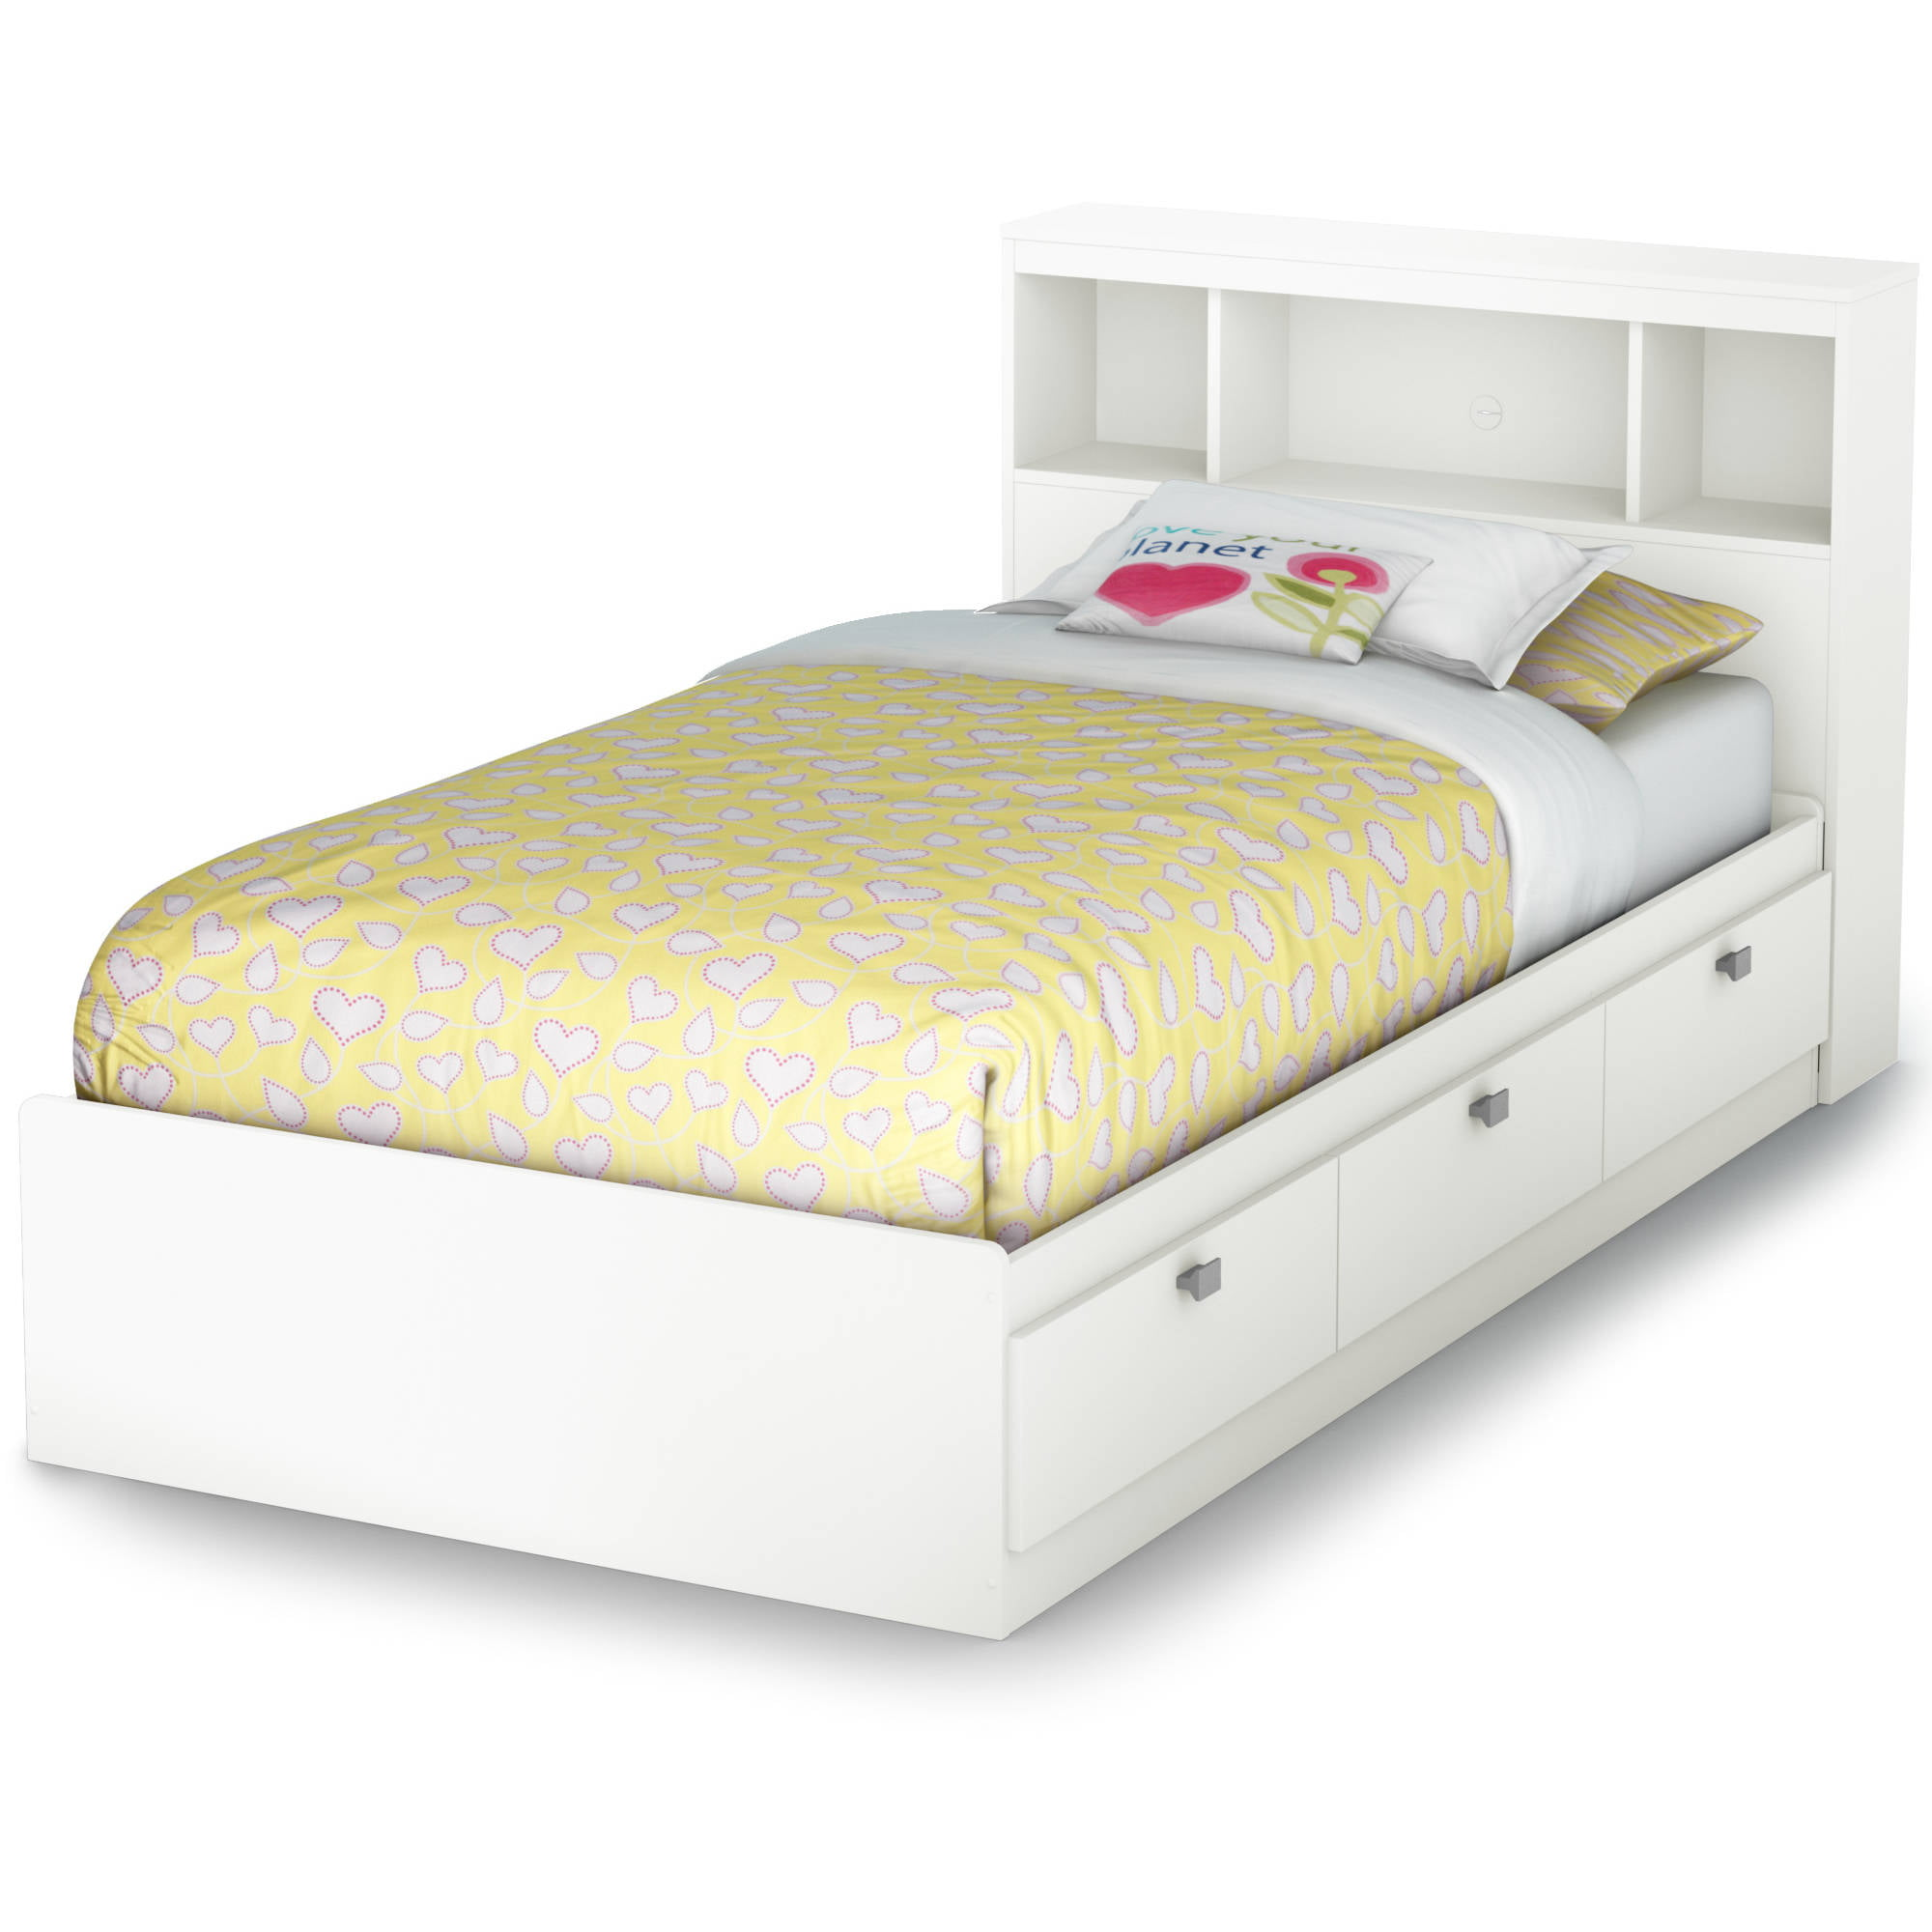 Details About Twin Mates Captains Bed Headboard Drawers Storage Kids Bedroom Furniture White